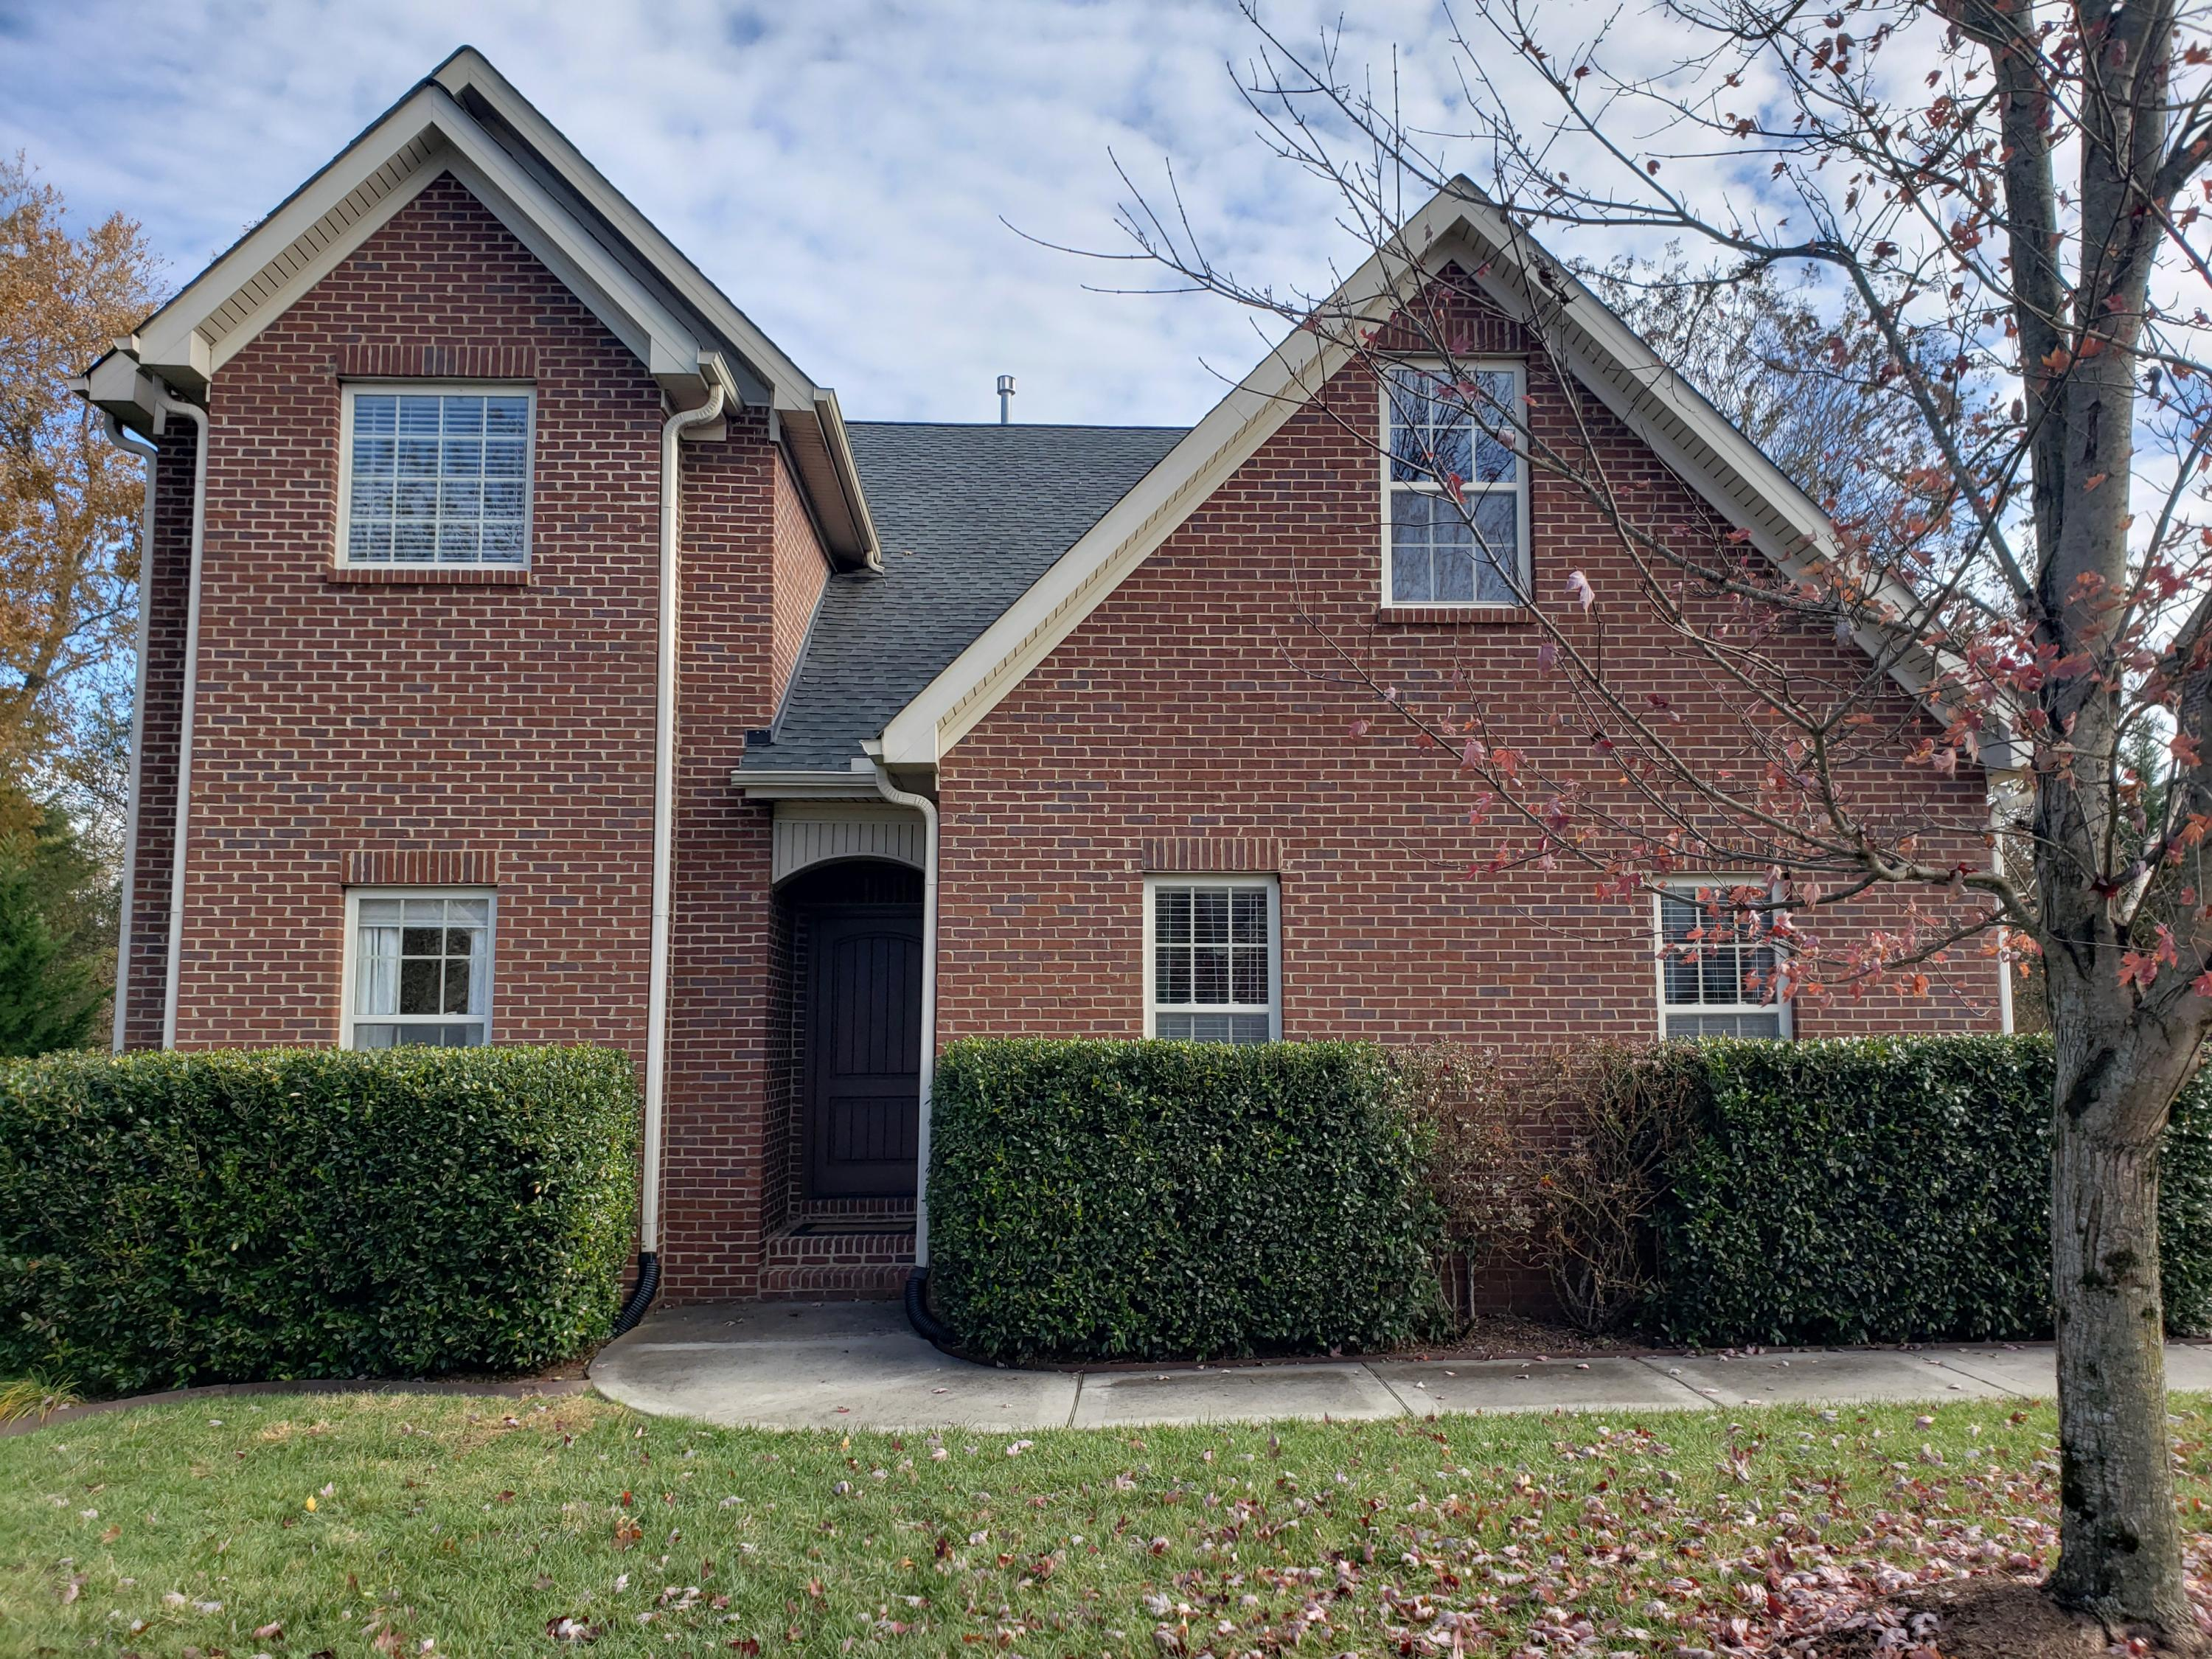 1710 Bonnie Roach, Knoxville, Tennessee, United States 37922, 4 Bedrooms Bedrooms, ,3 BathroomsBathrooms,Single Family,For Sale,Bonnie Roach,1100618